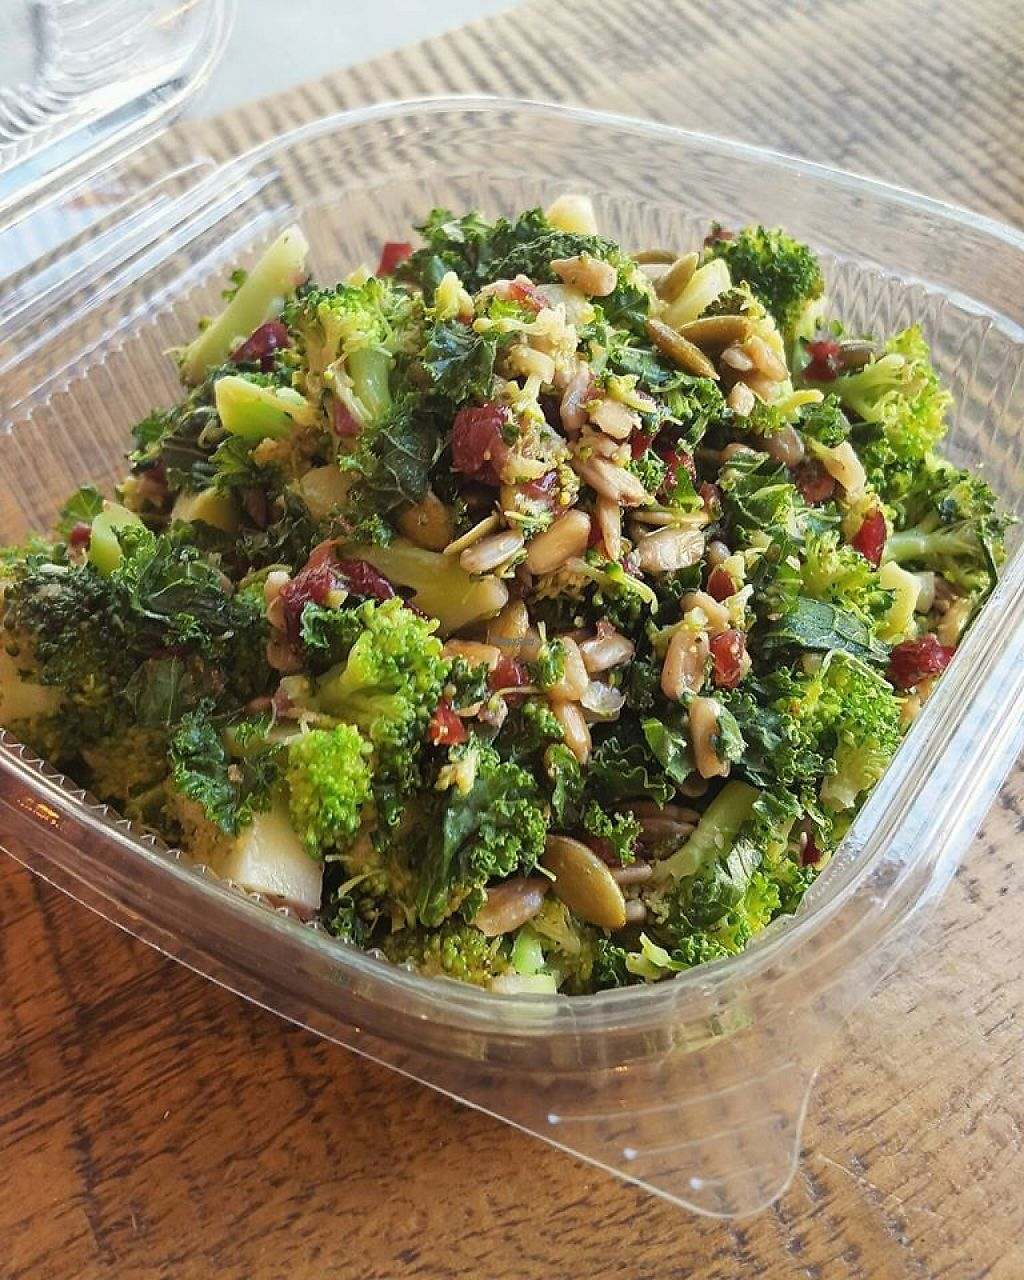 """Photo of Cafe Oranje  by <a href=""""/members/profile/community"""">community</a> <br/>Autumn Broccoli Salad  <br/> February 18, 2017  - <a href='/contact/abuse/image/66795/227733'>Report</a>"""